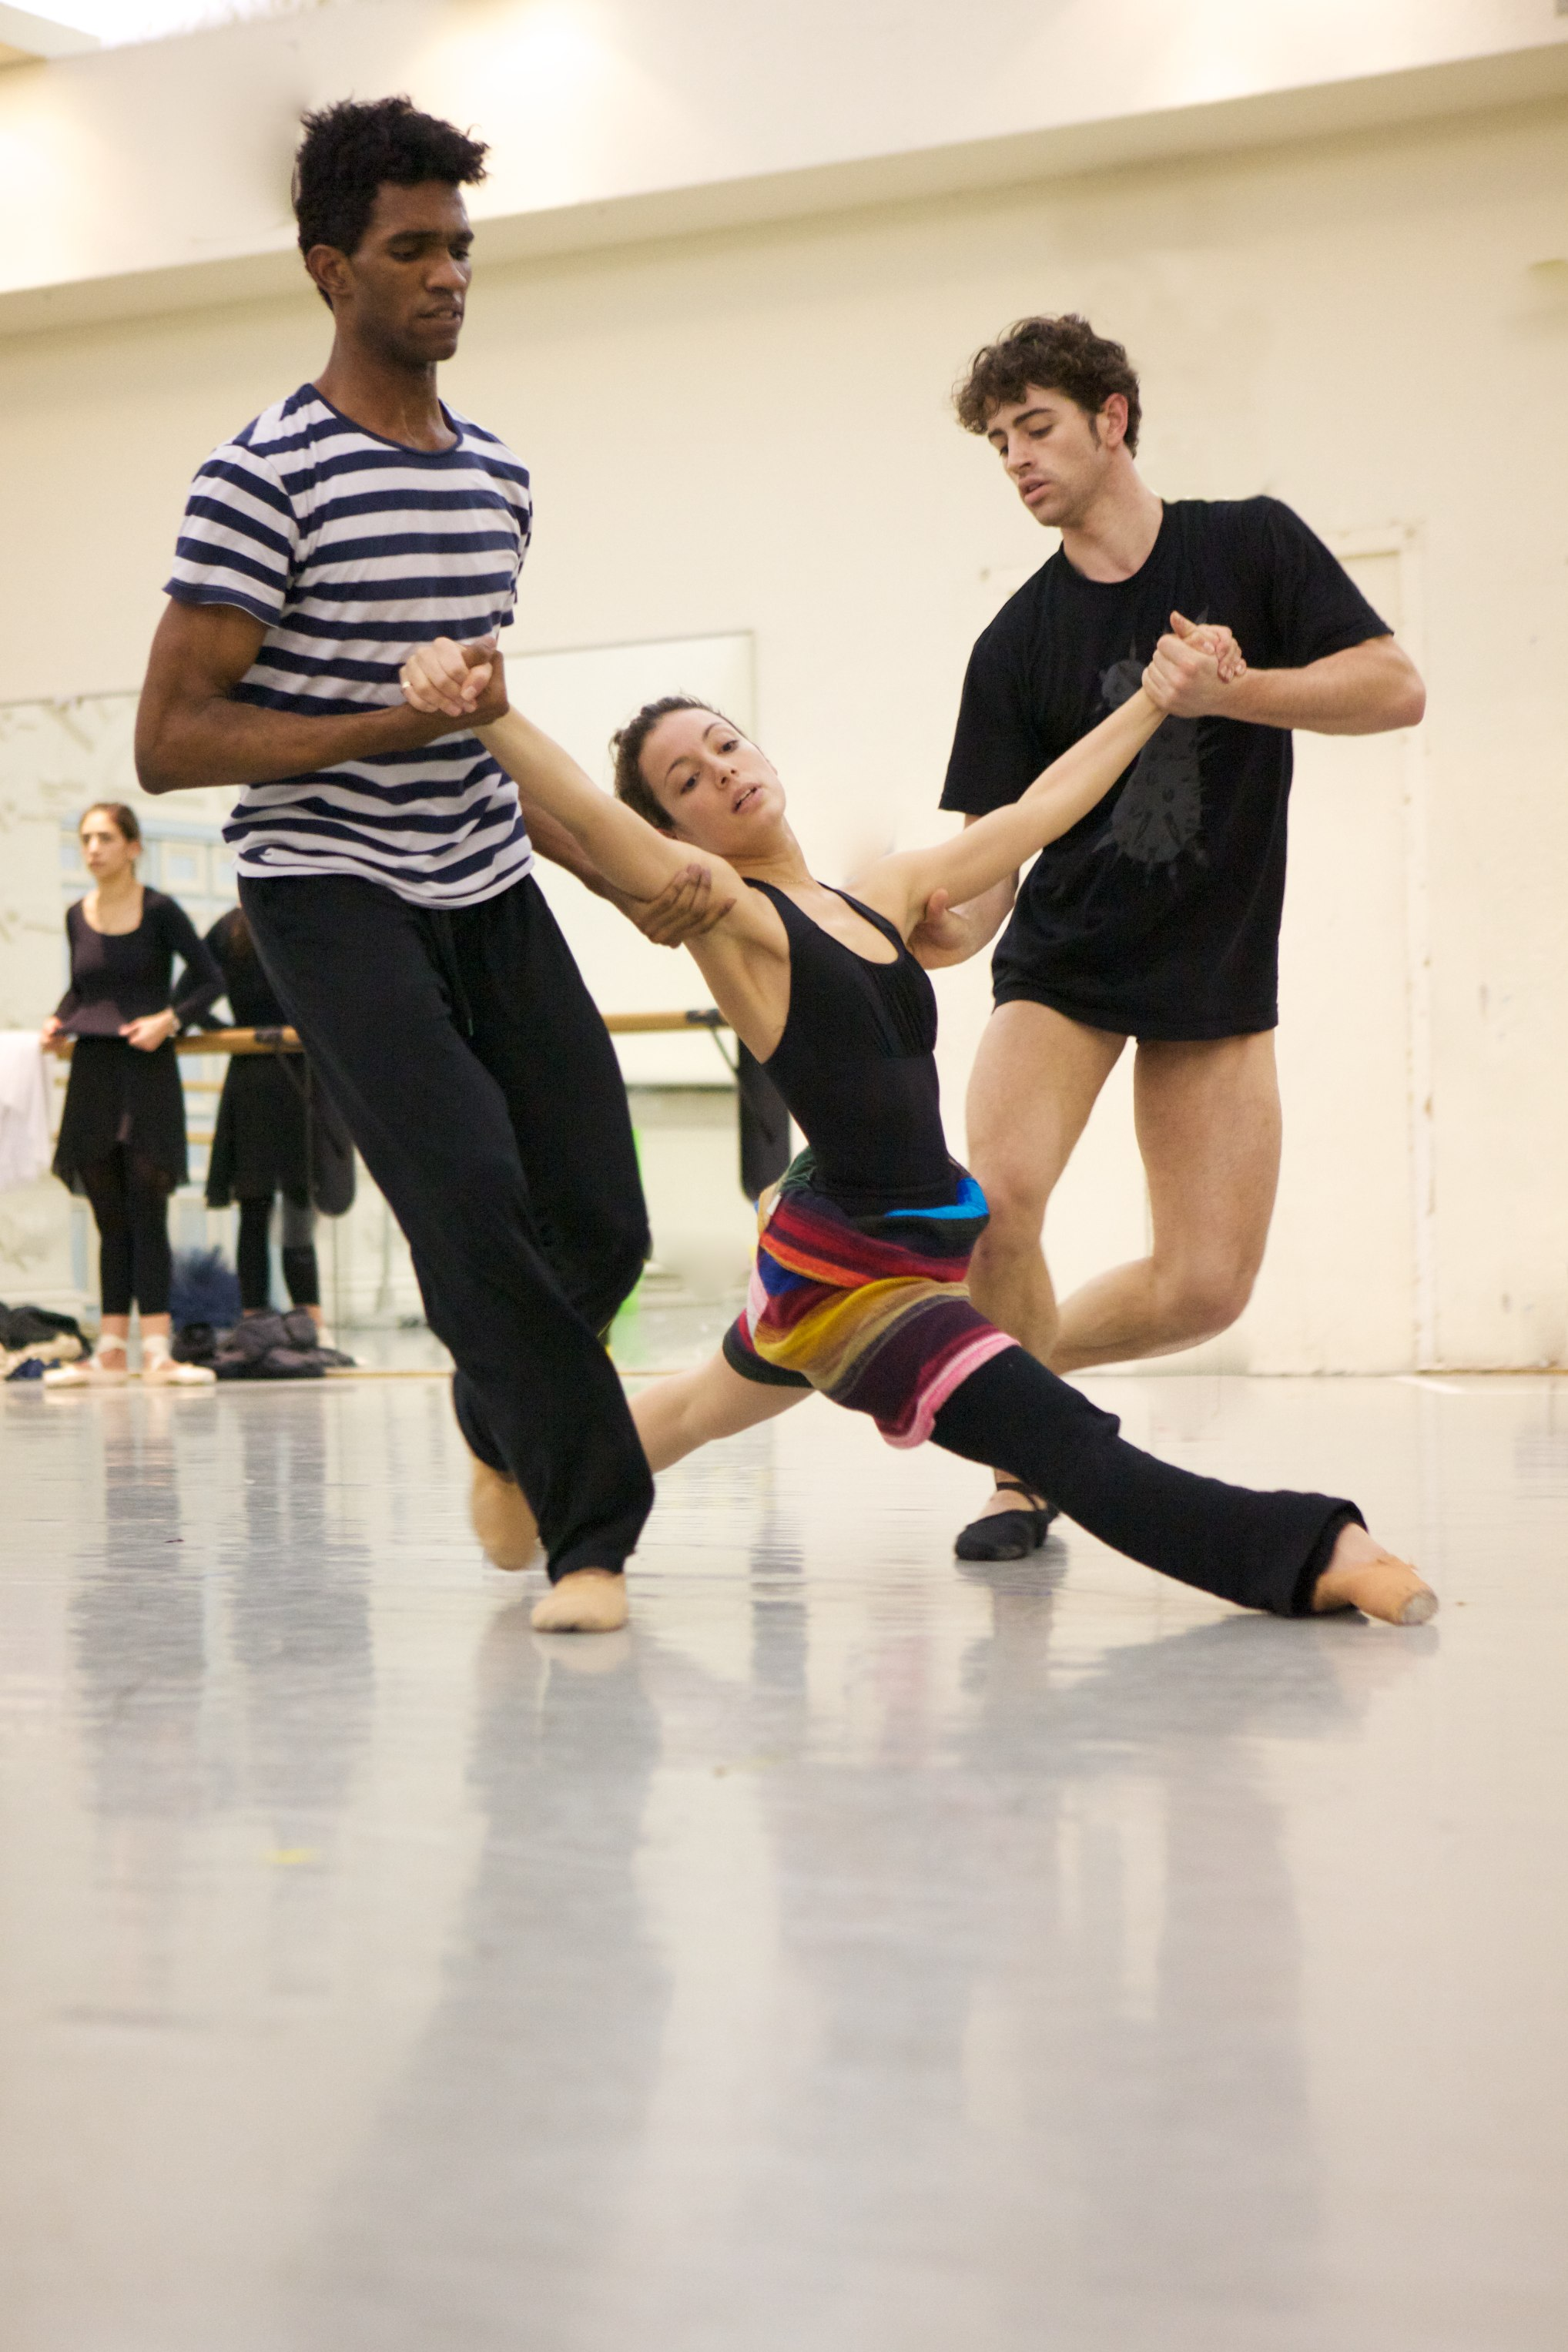 dancers rehearsing for the upcoming Black & White programme